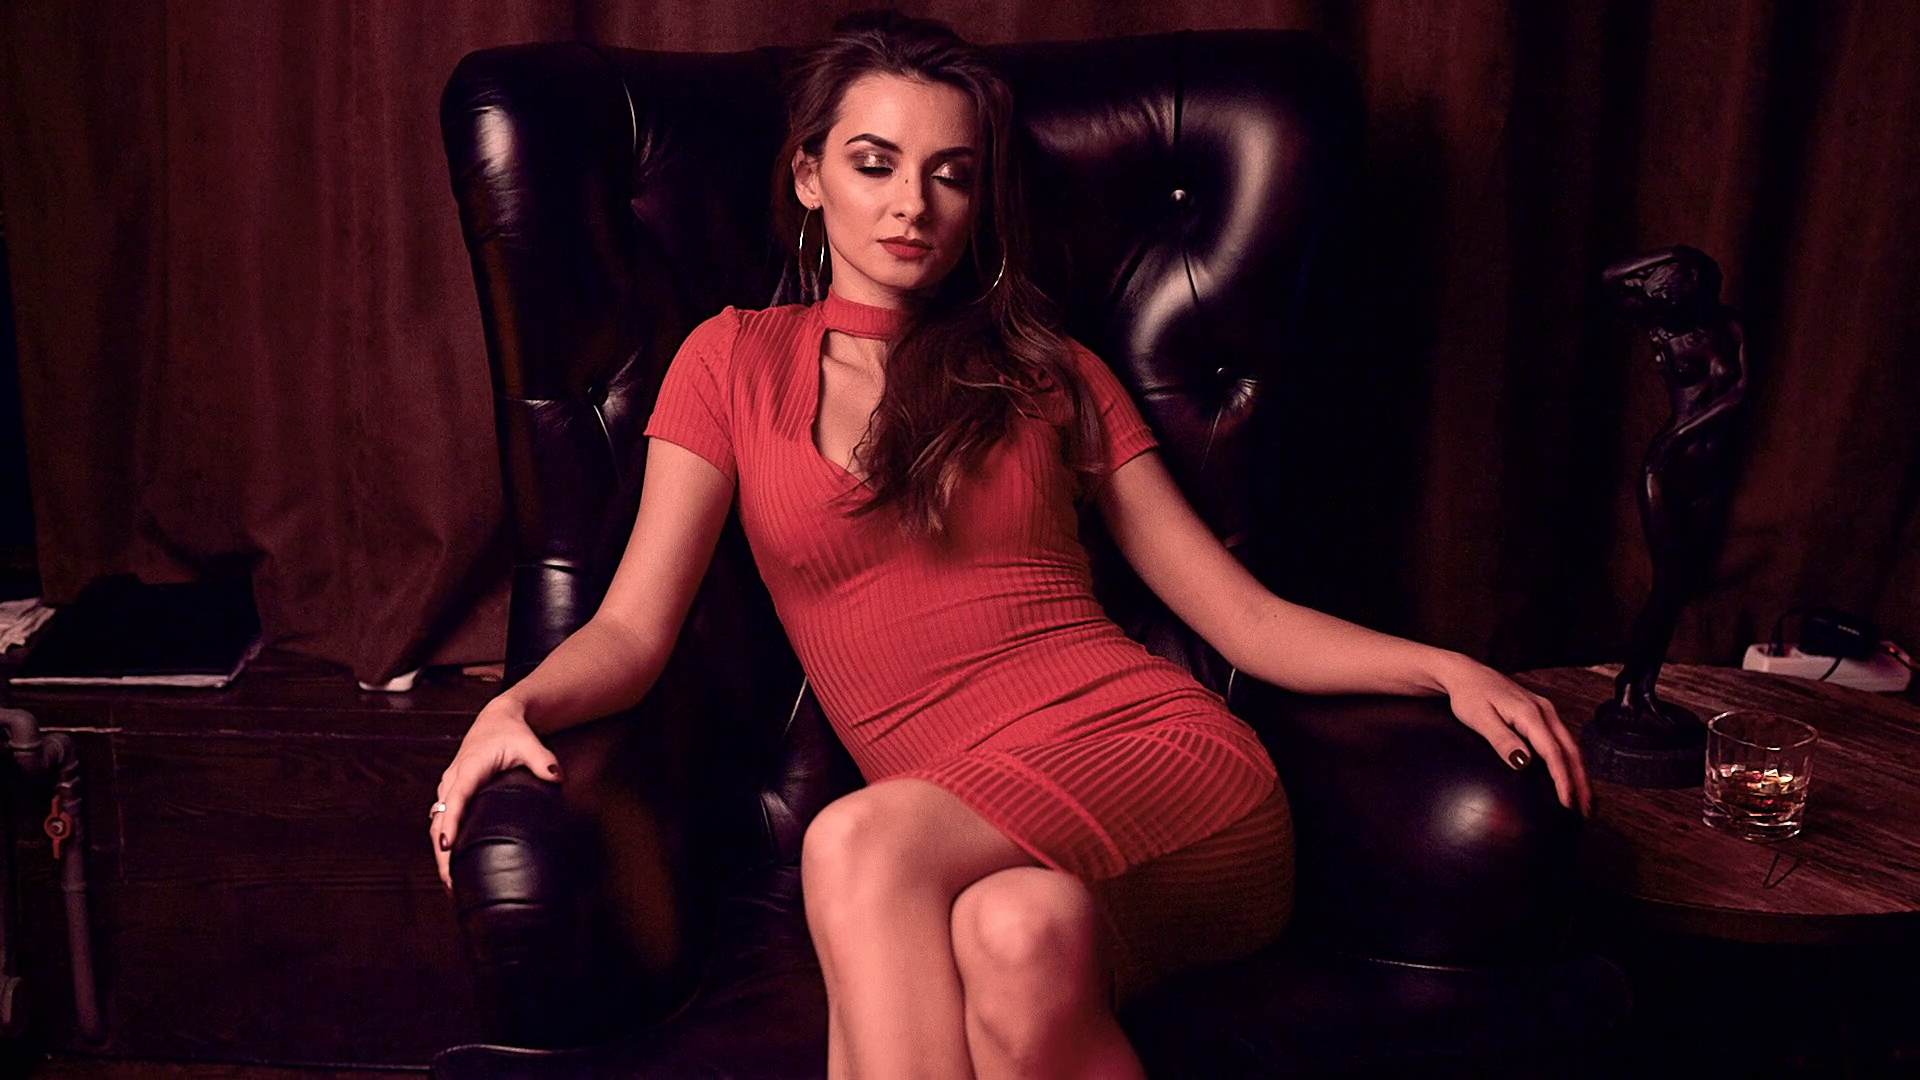 Beauty in red photo